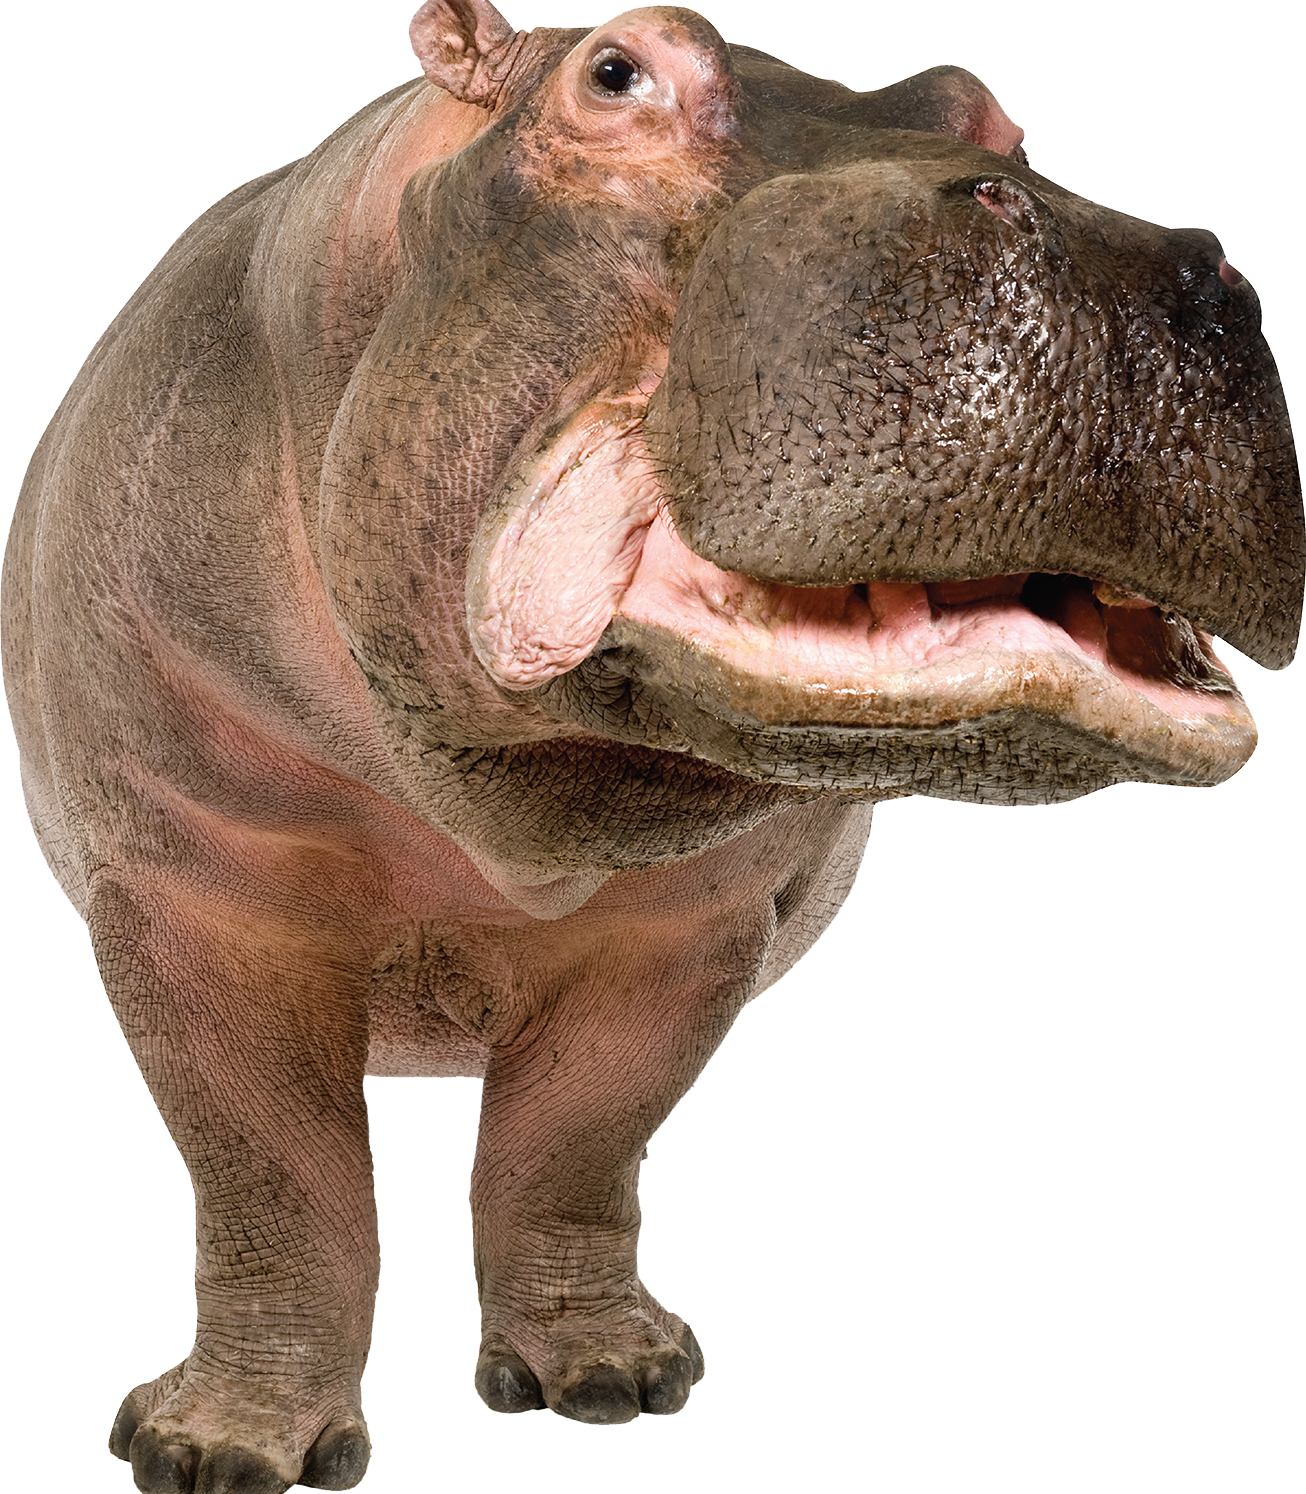 Png images free download. Hippo clipart realistic cartoon